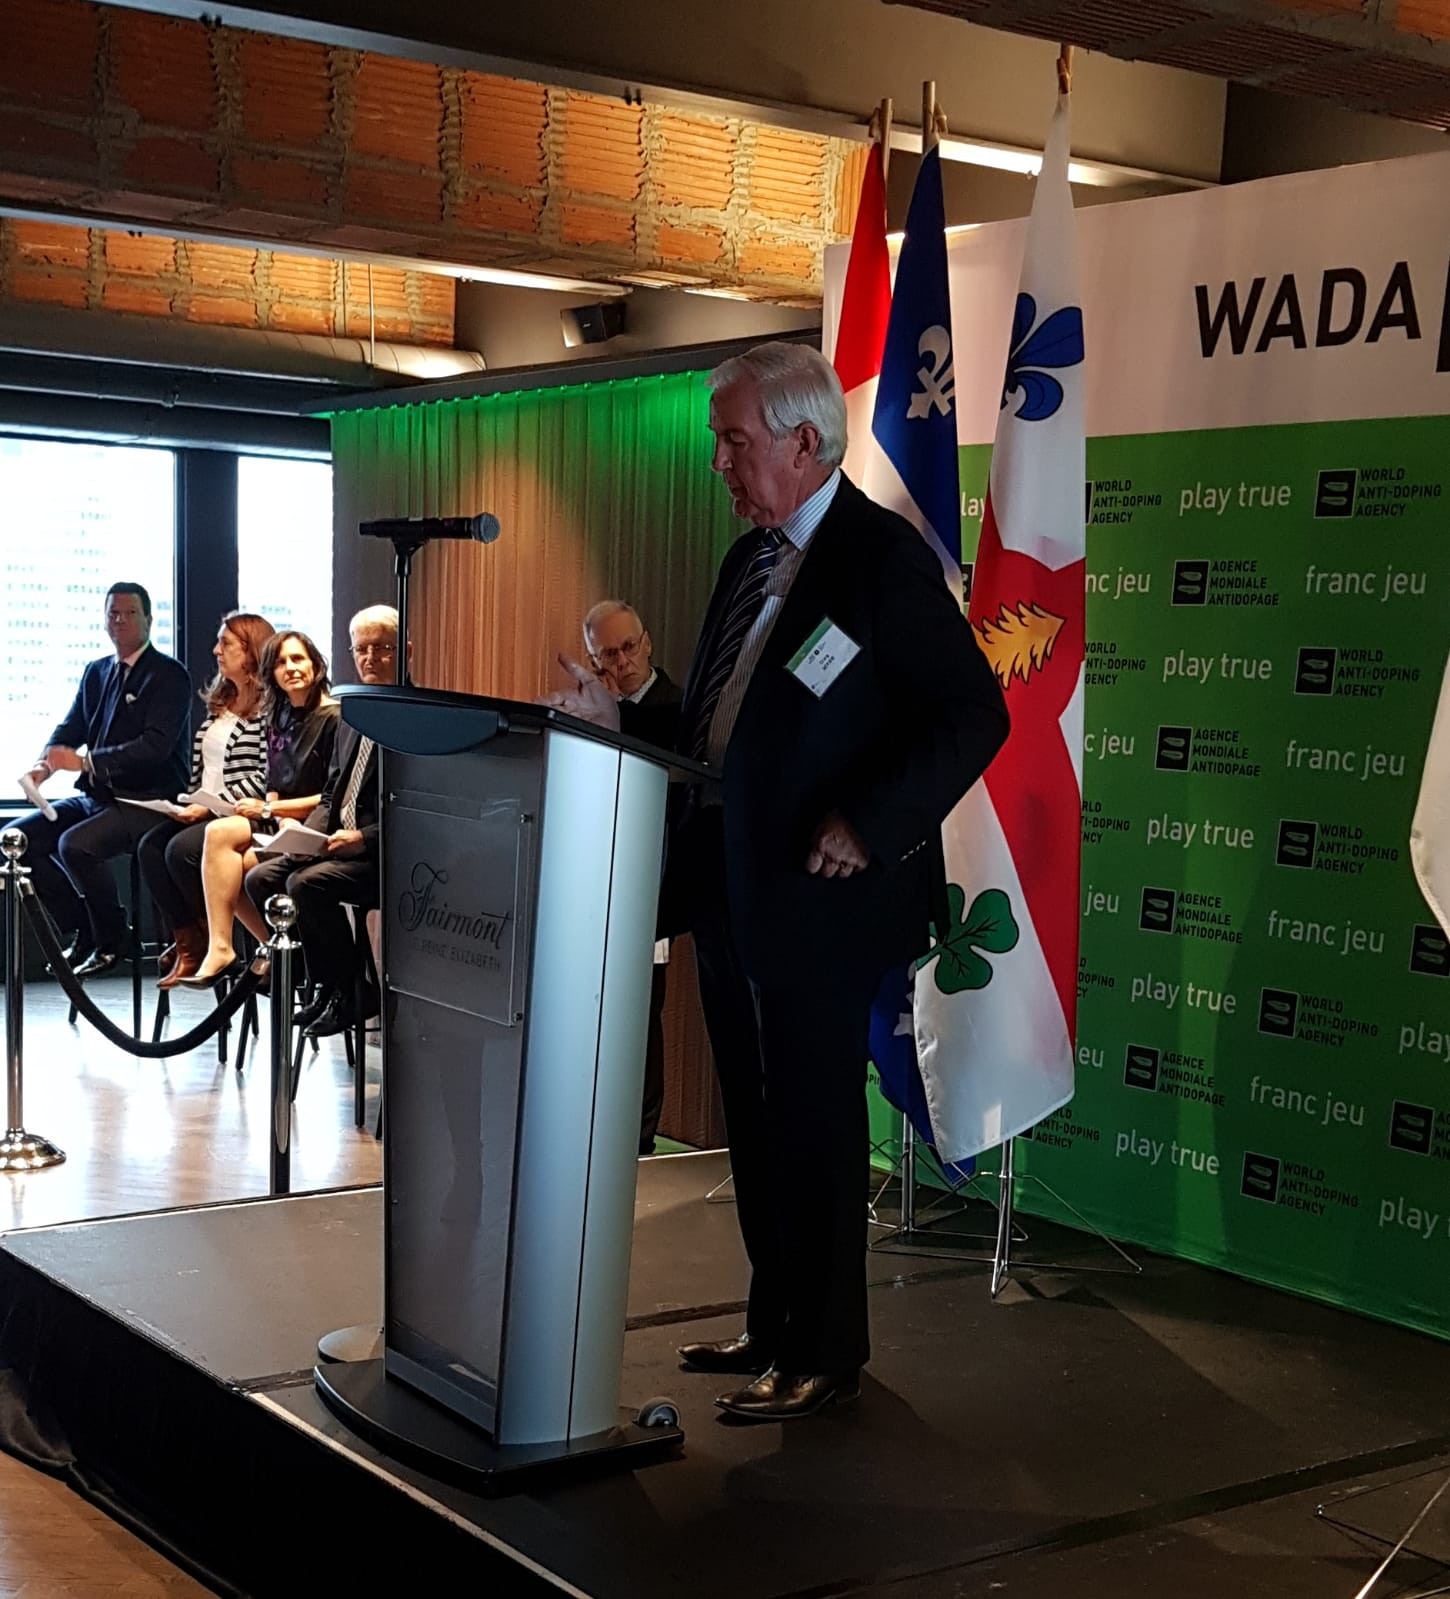 WADA celebrates extension of Montreal hosting agreement at Lennon hotel